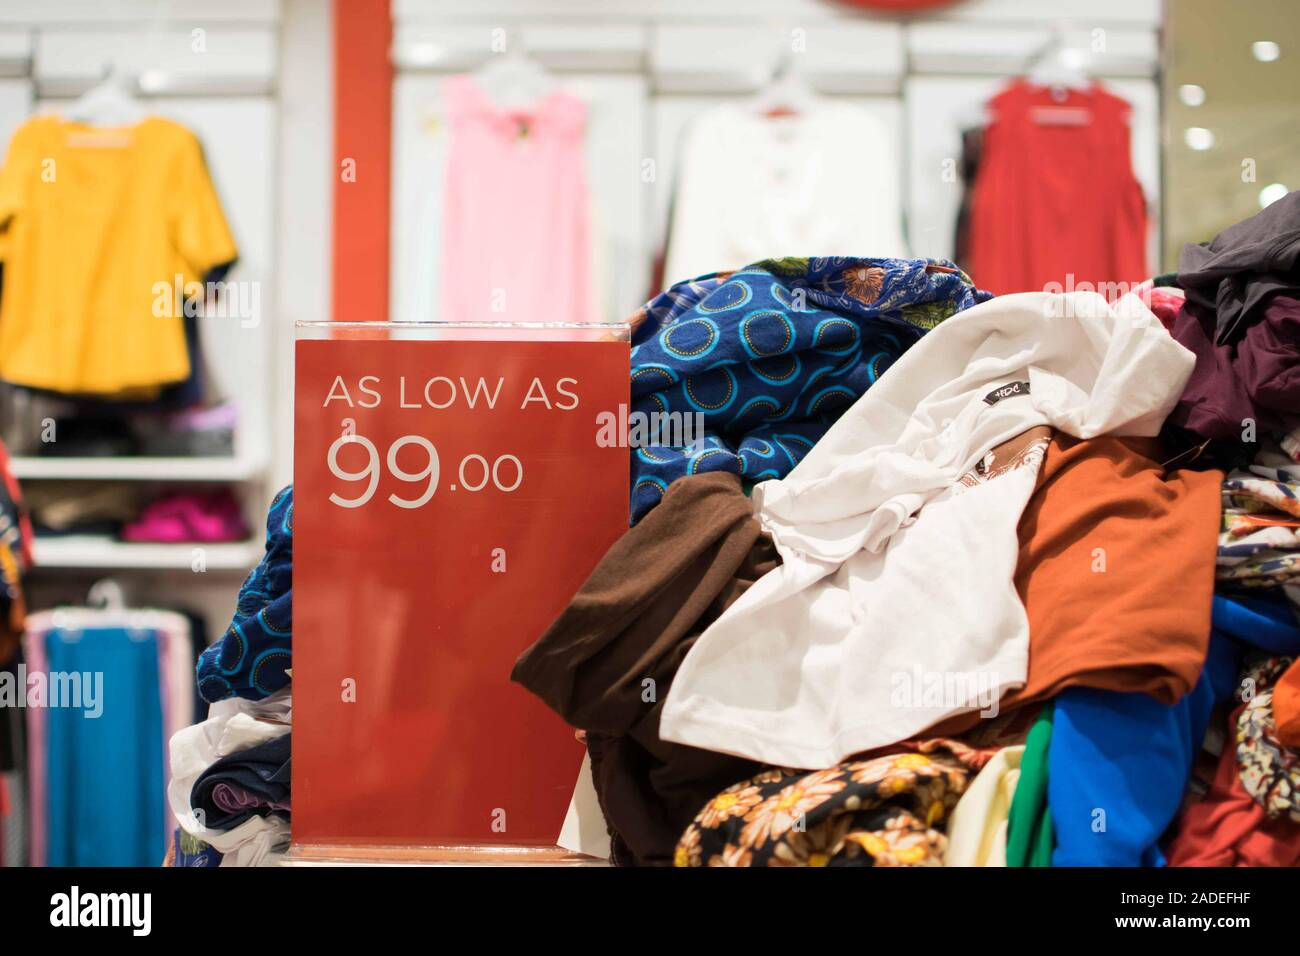 Abundance Choice Closet Clothing High Resolution Stock Photography And Images Alamy